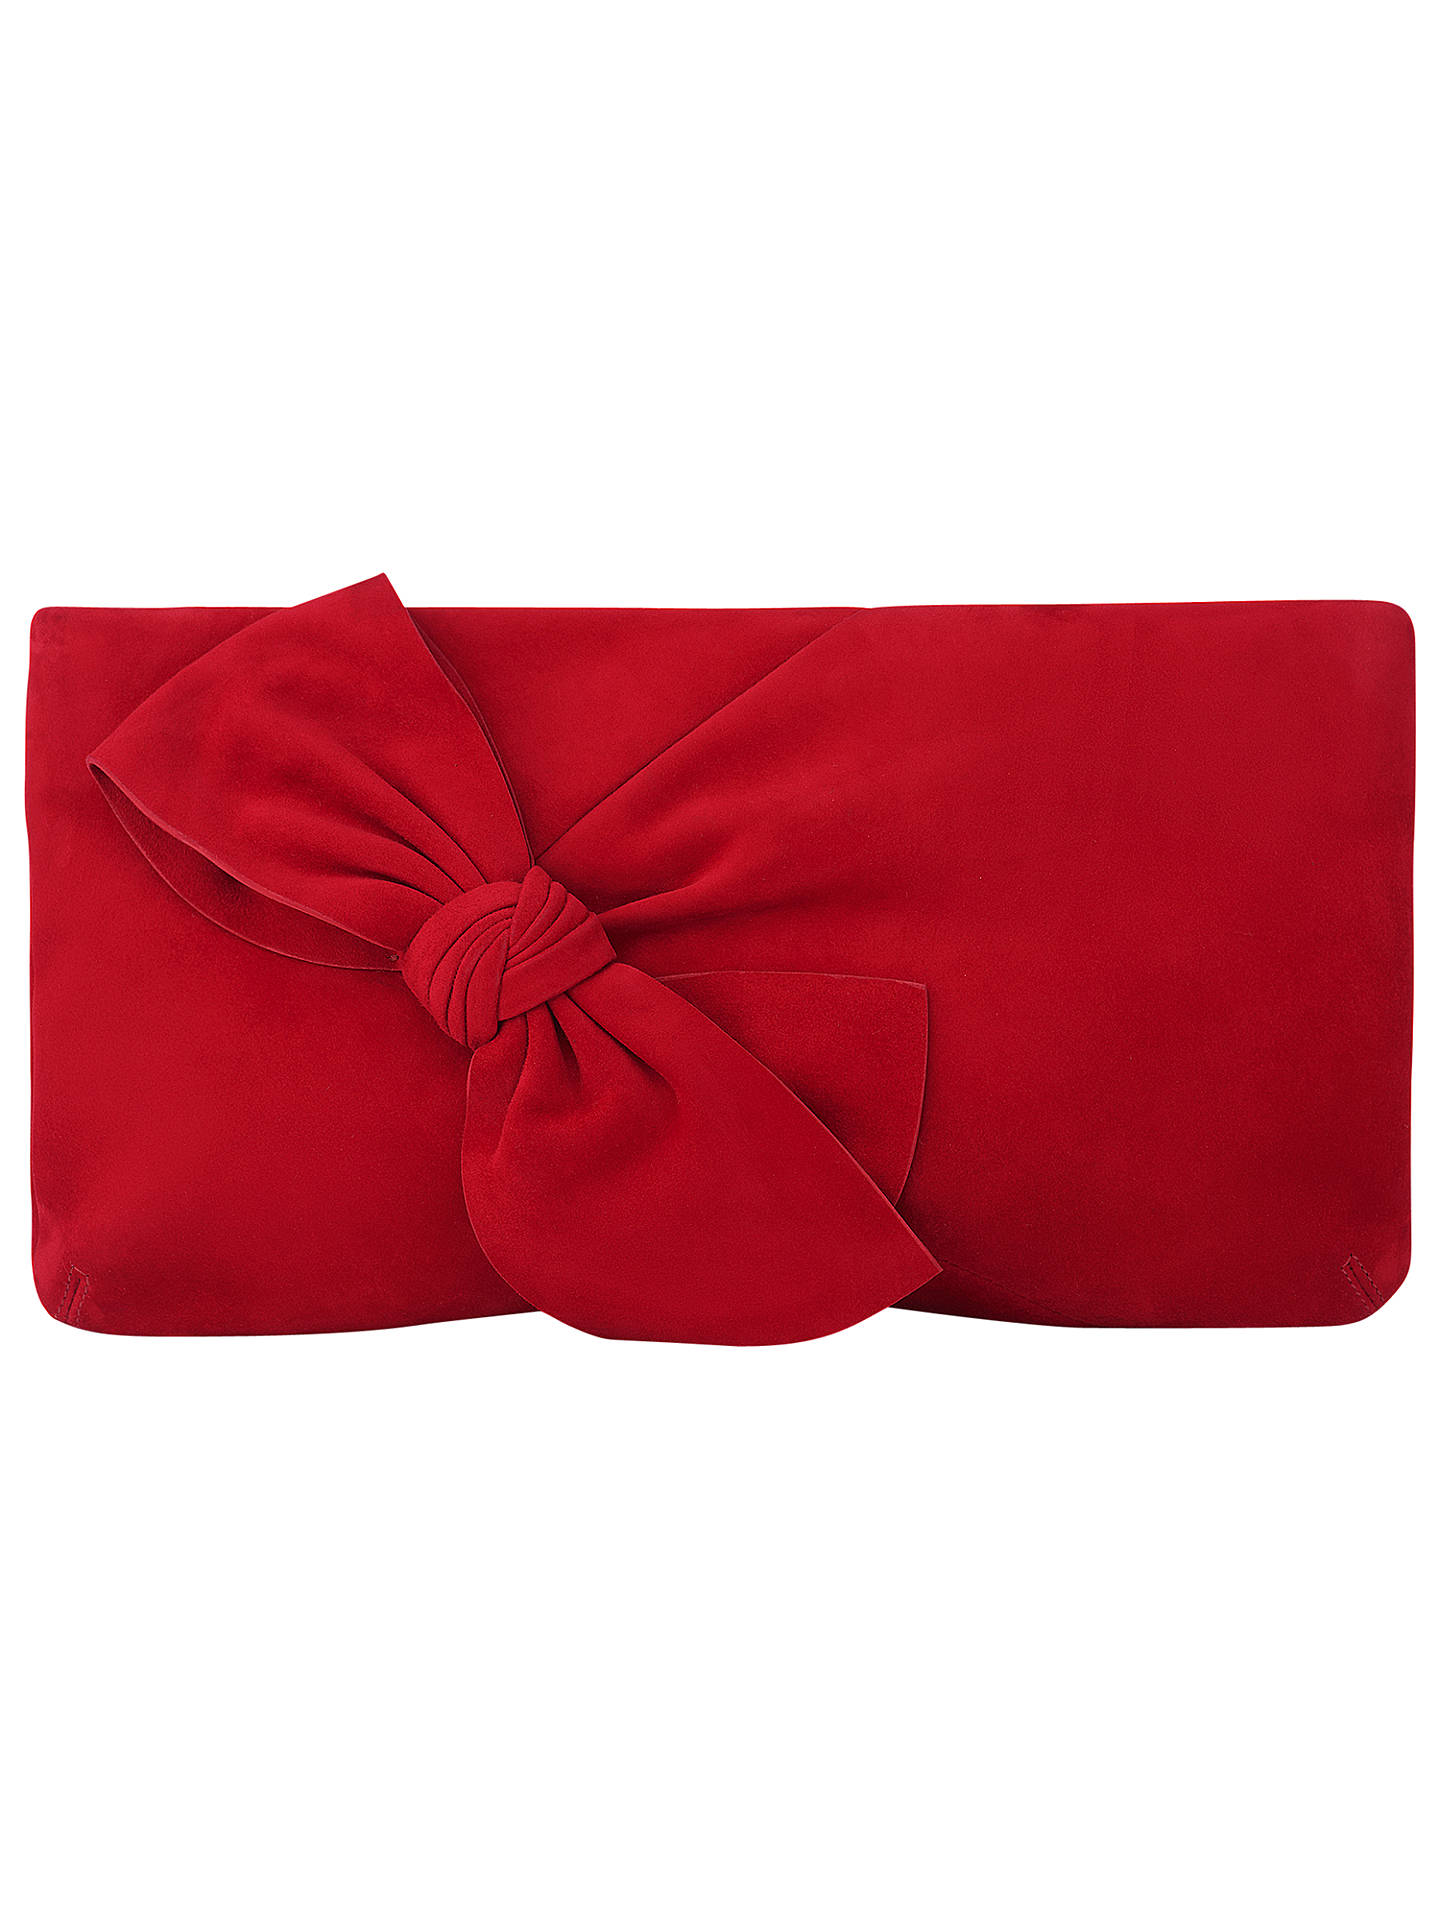 5e3cfe890f6 Buy L.K. Bennett Fay Bow Clutch Bag, Roca Red Suede Online at johnlewis.com  ...